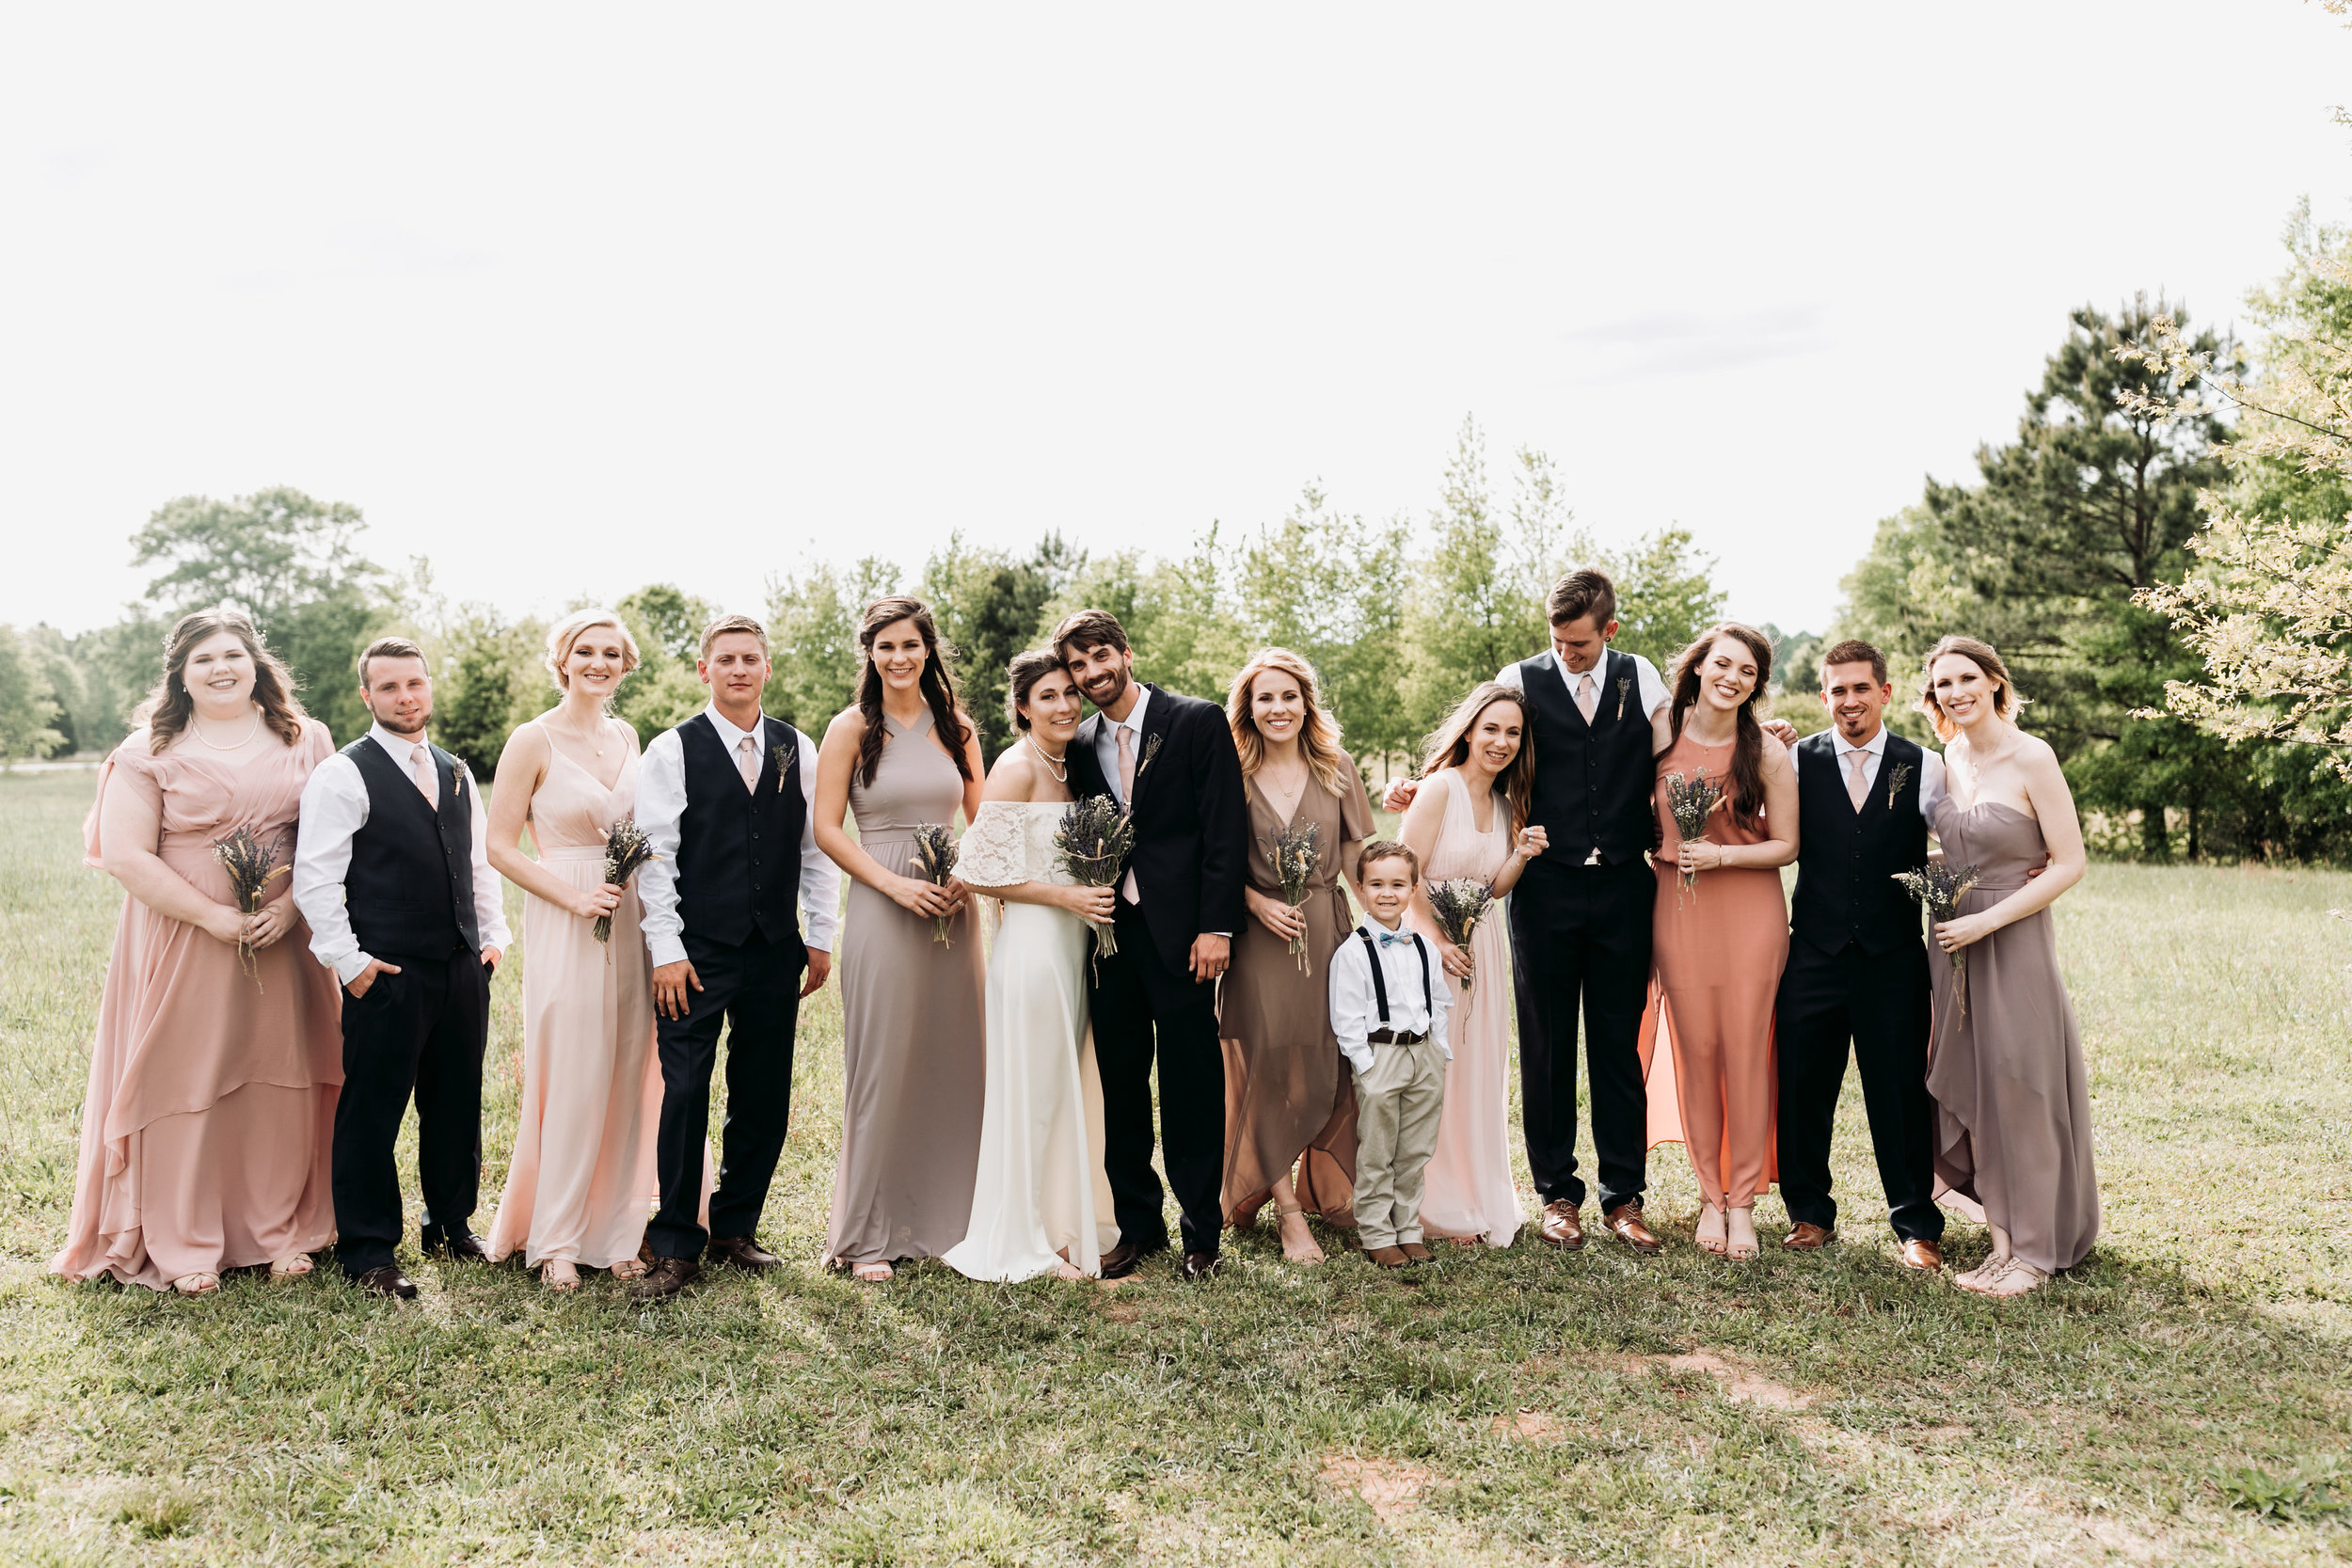 The love and friendship of this group runs deep! pc: Sydney Renee Photography